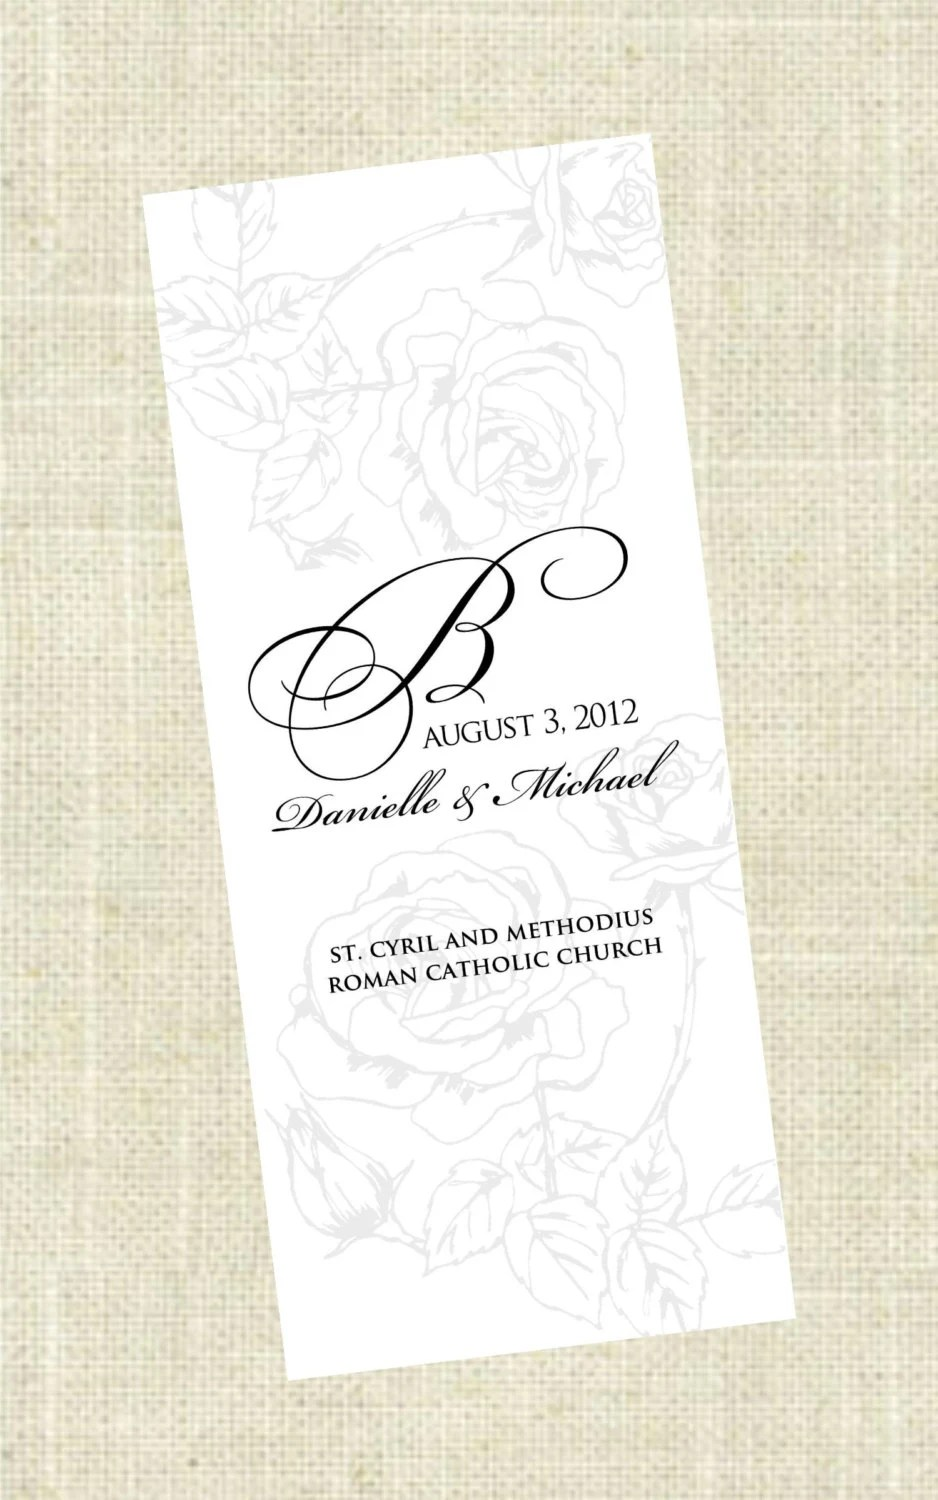 TriFold Printable Wedding Program by ImpressPapers on Etsy